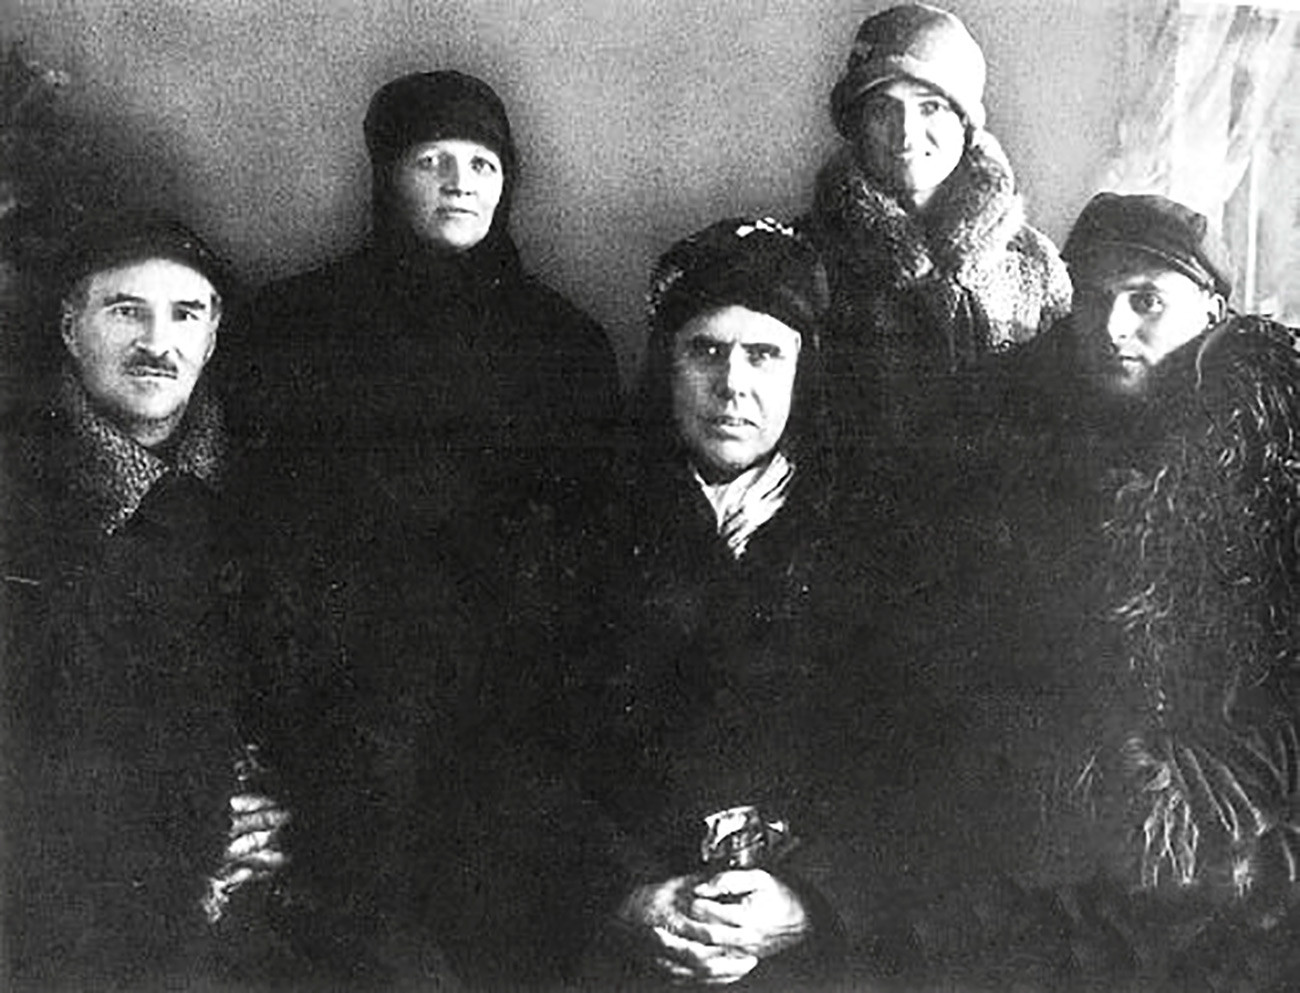 Theodore Dreiser (C) visiting the Soviet coal mine, 1927